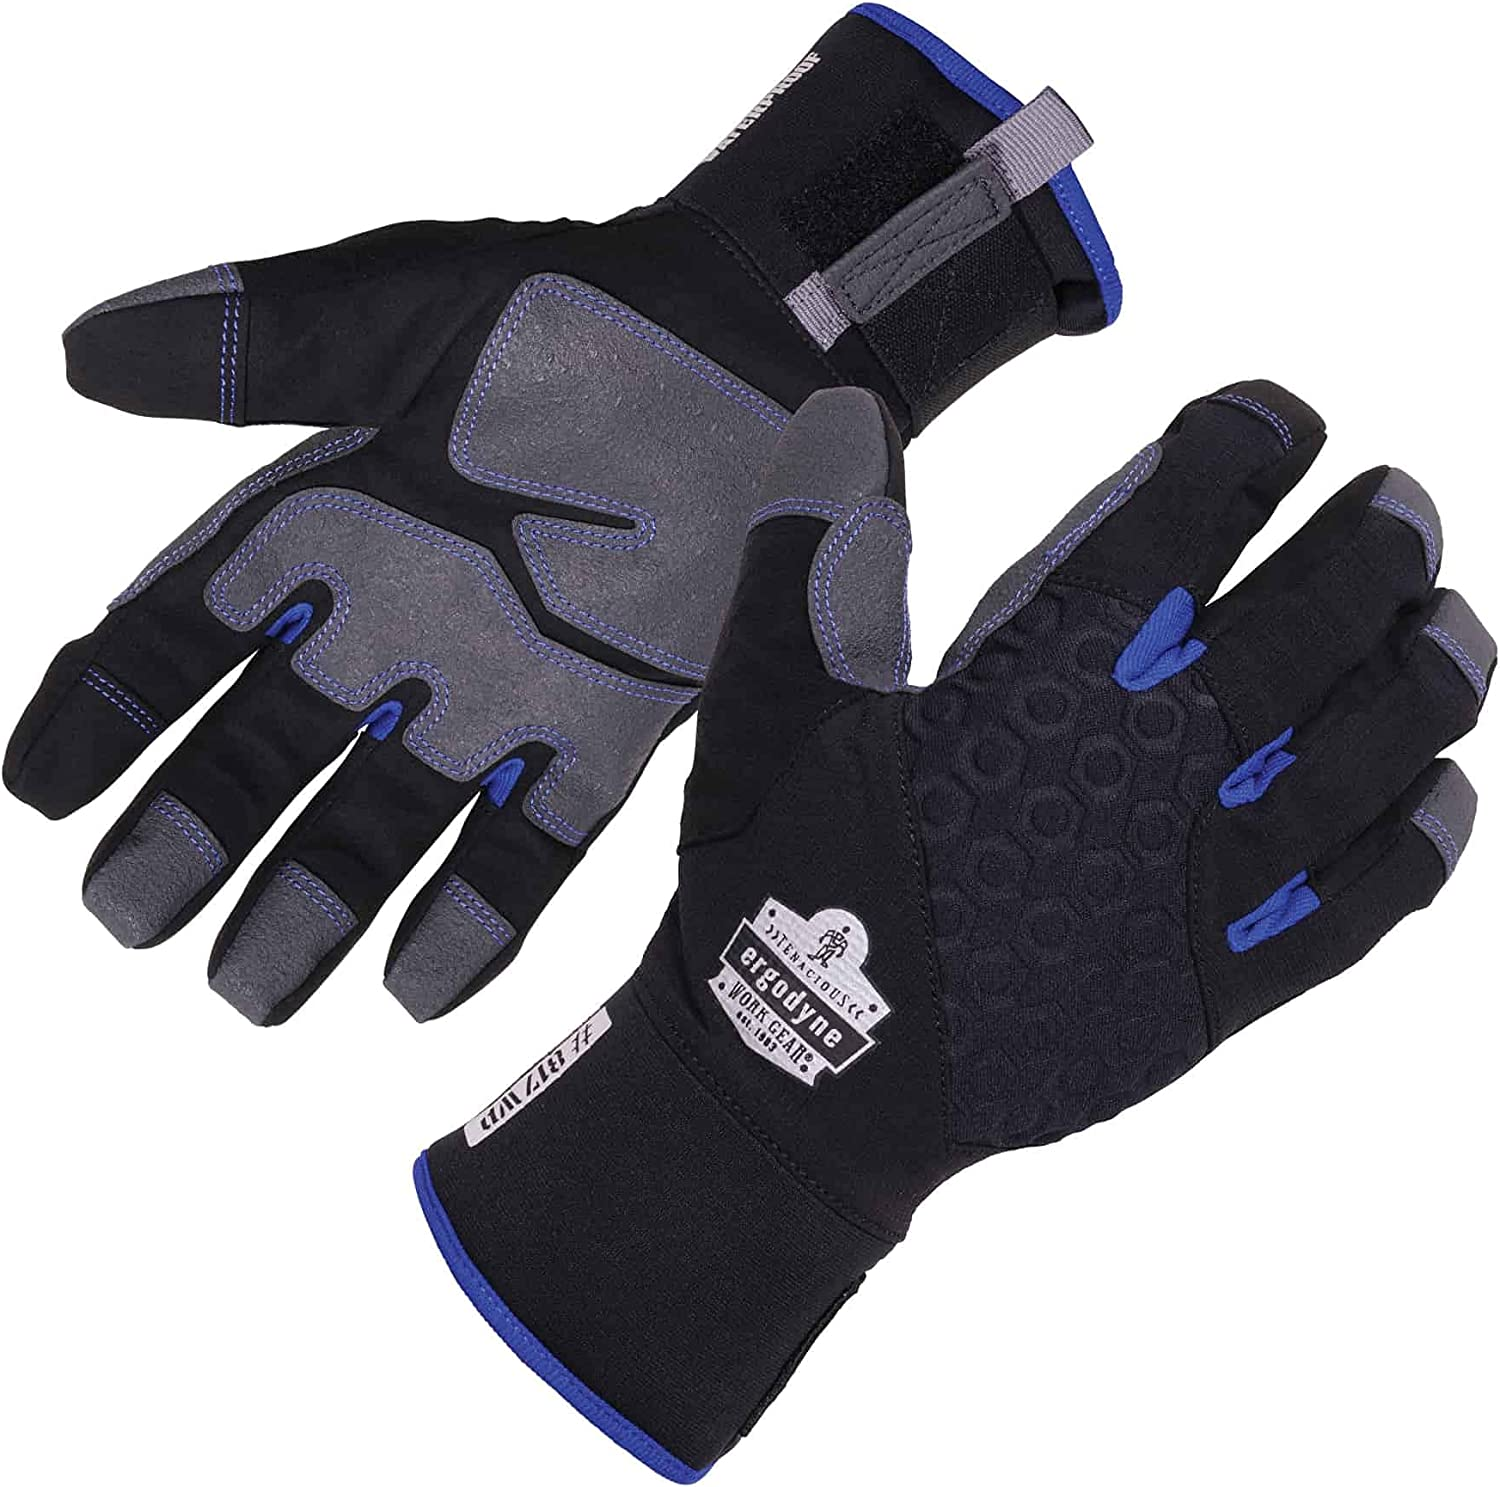 Arlington Mall Ergodyne ProFlex 817WP Waterproof Thermal Insulated Gloves Super beauty product restock quality top Work